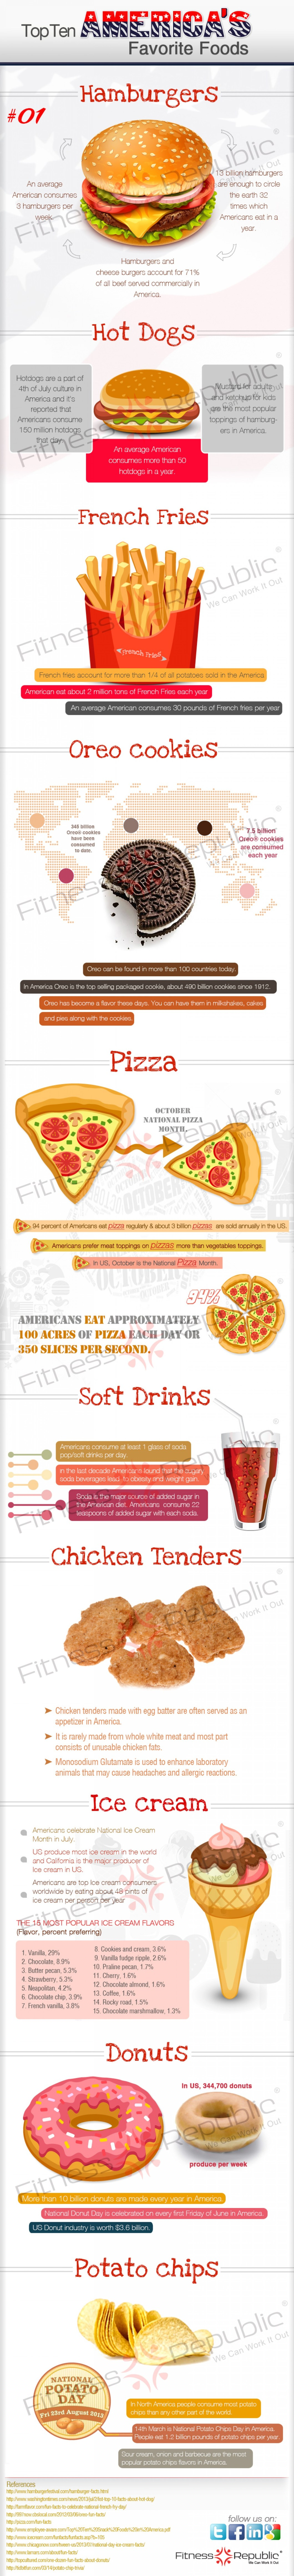 America's Favorite Foods: Top of the Pops - Infographic